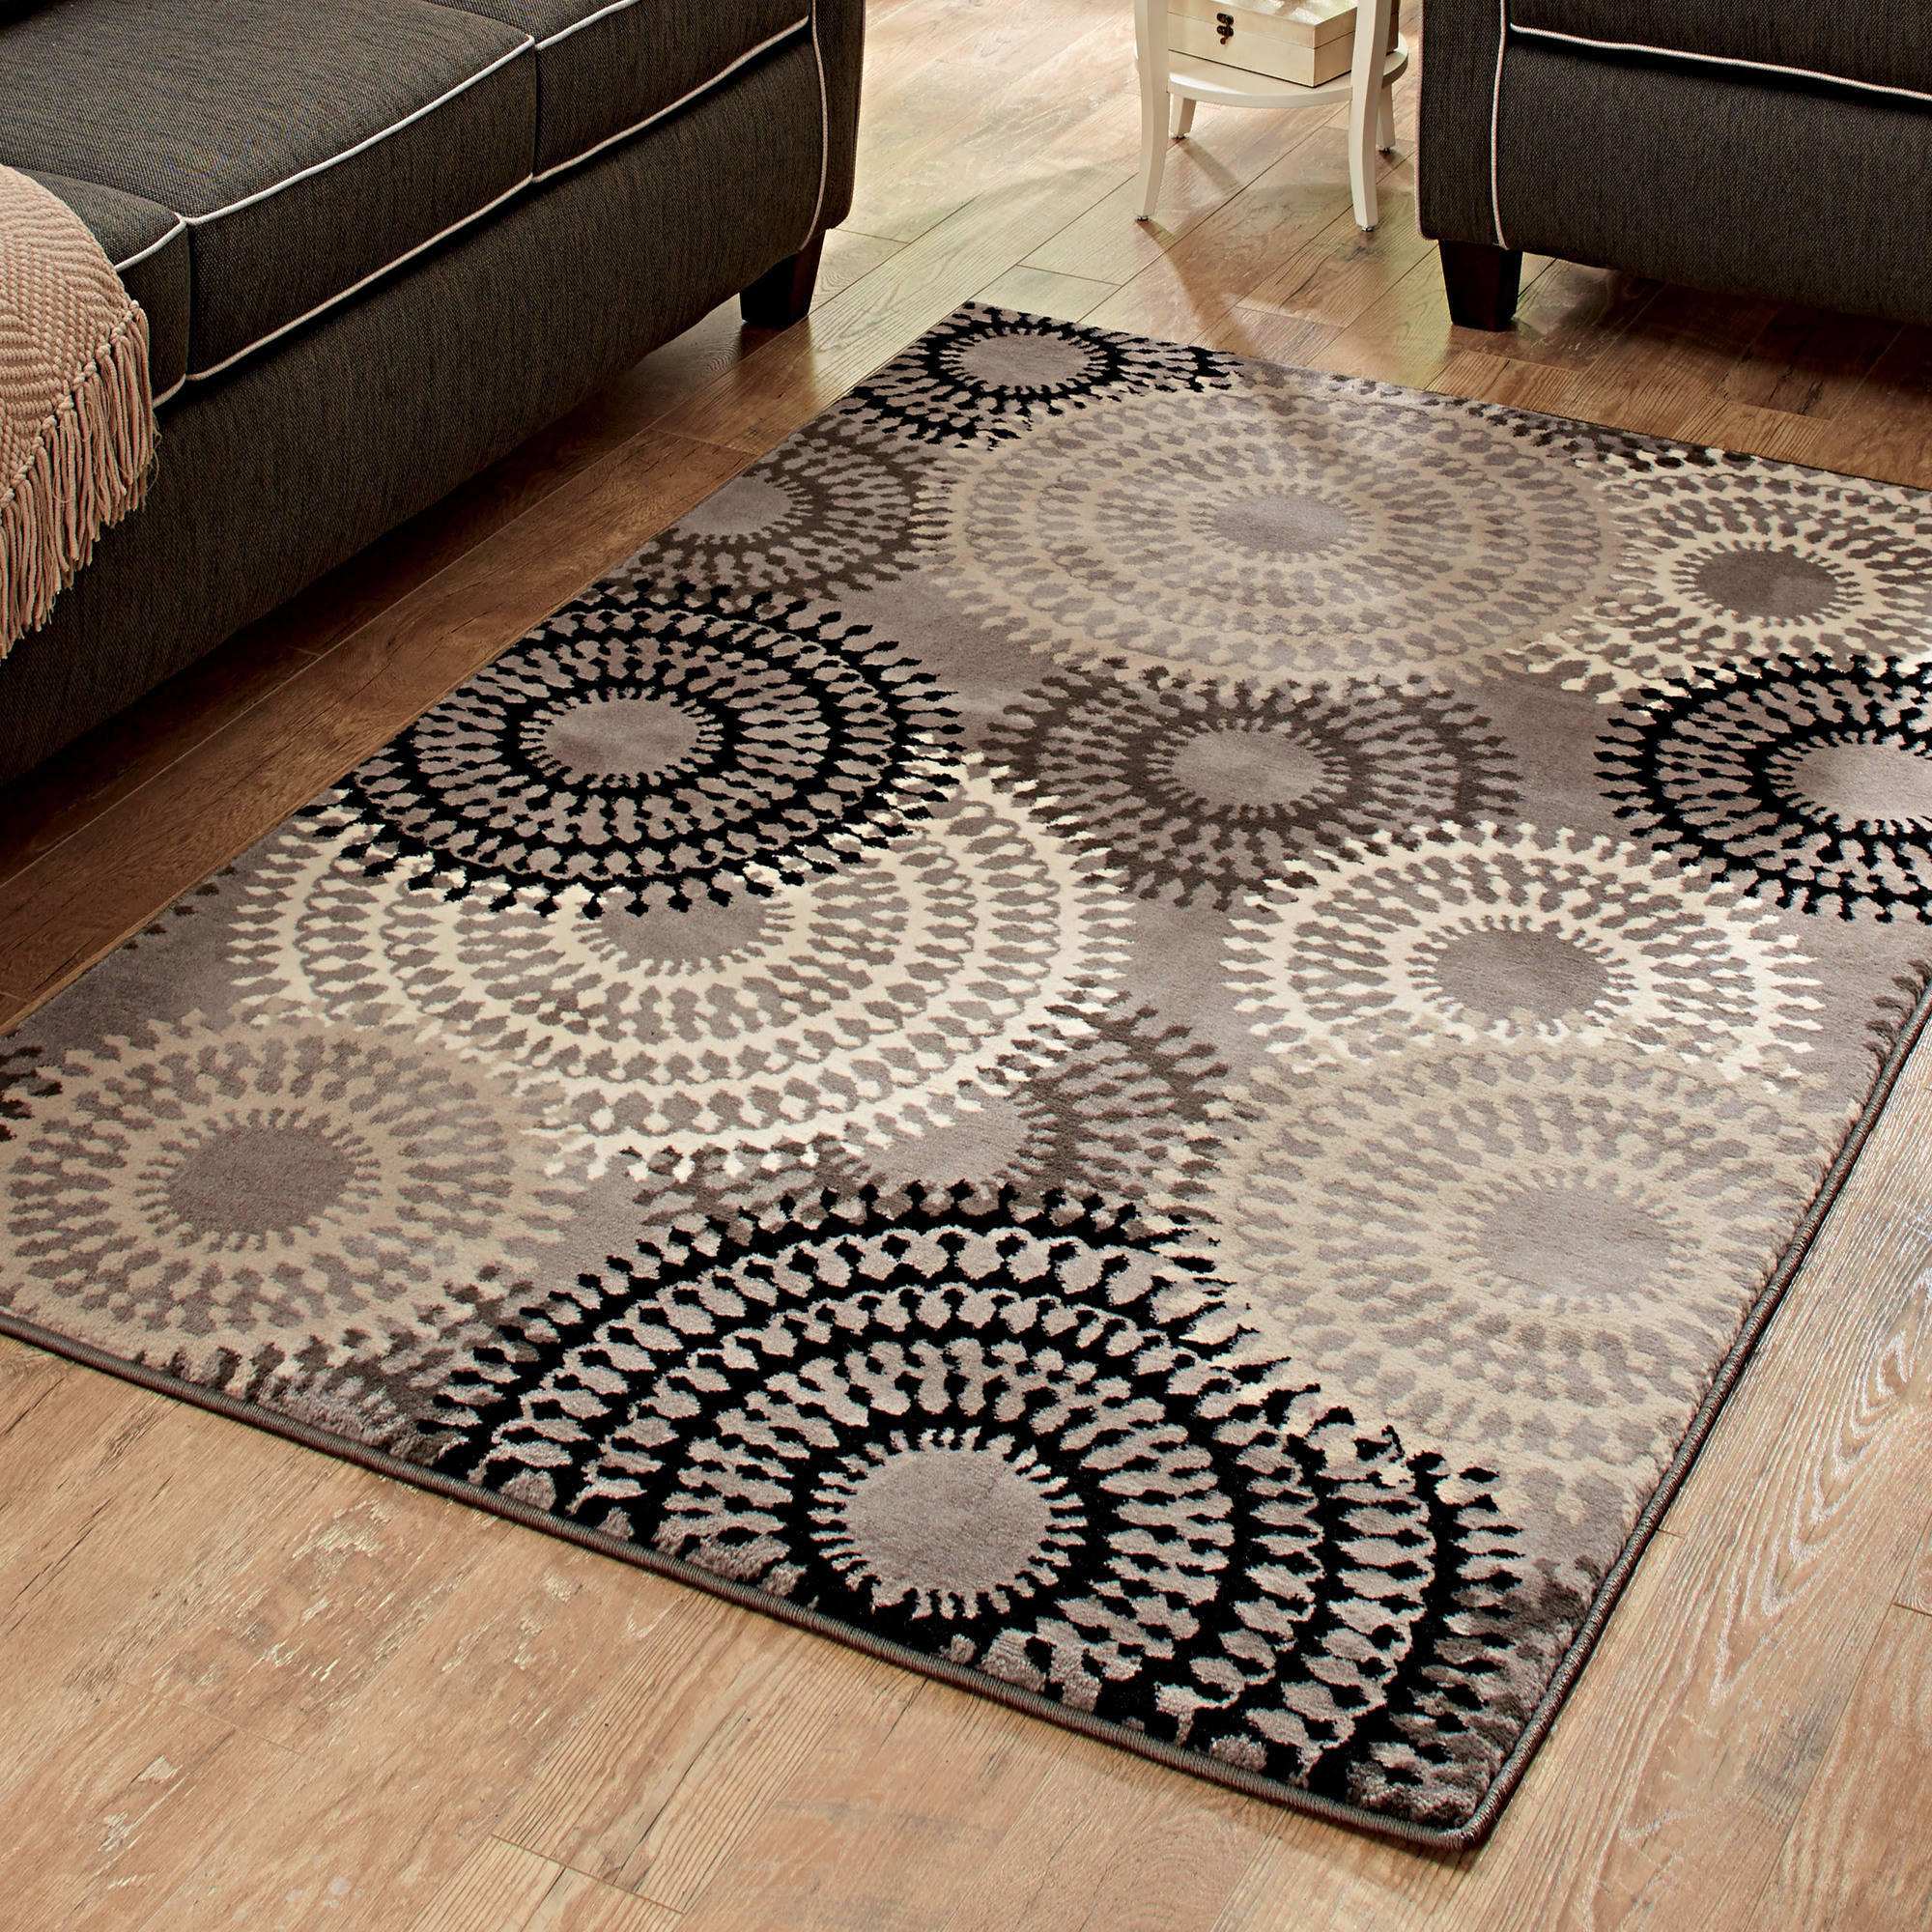 Better Homes Or Gardens Taupe Ornate Circles Area Rug Or Runner    Walmart.com